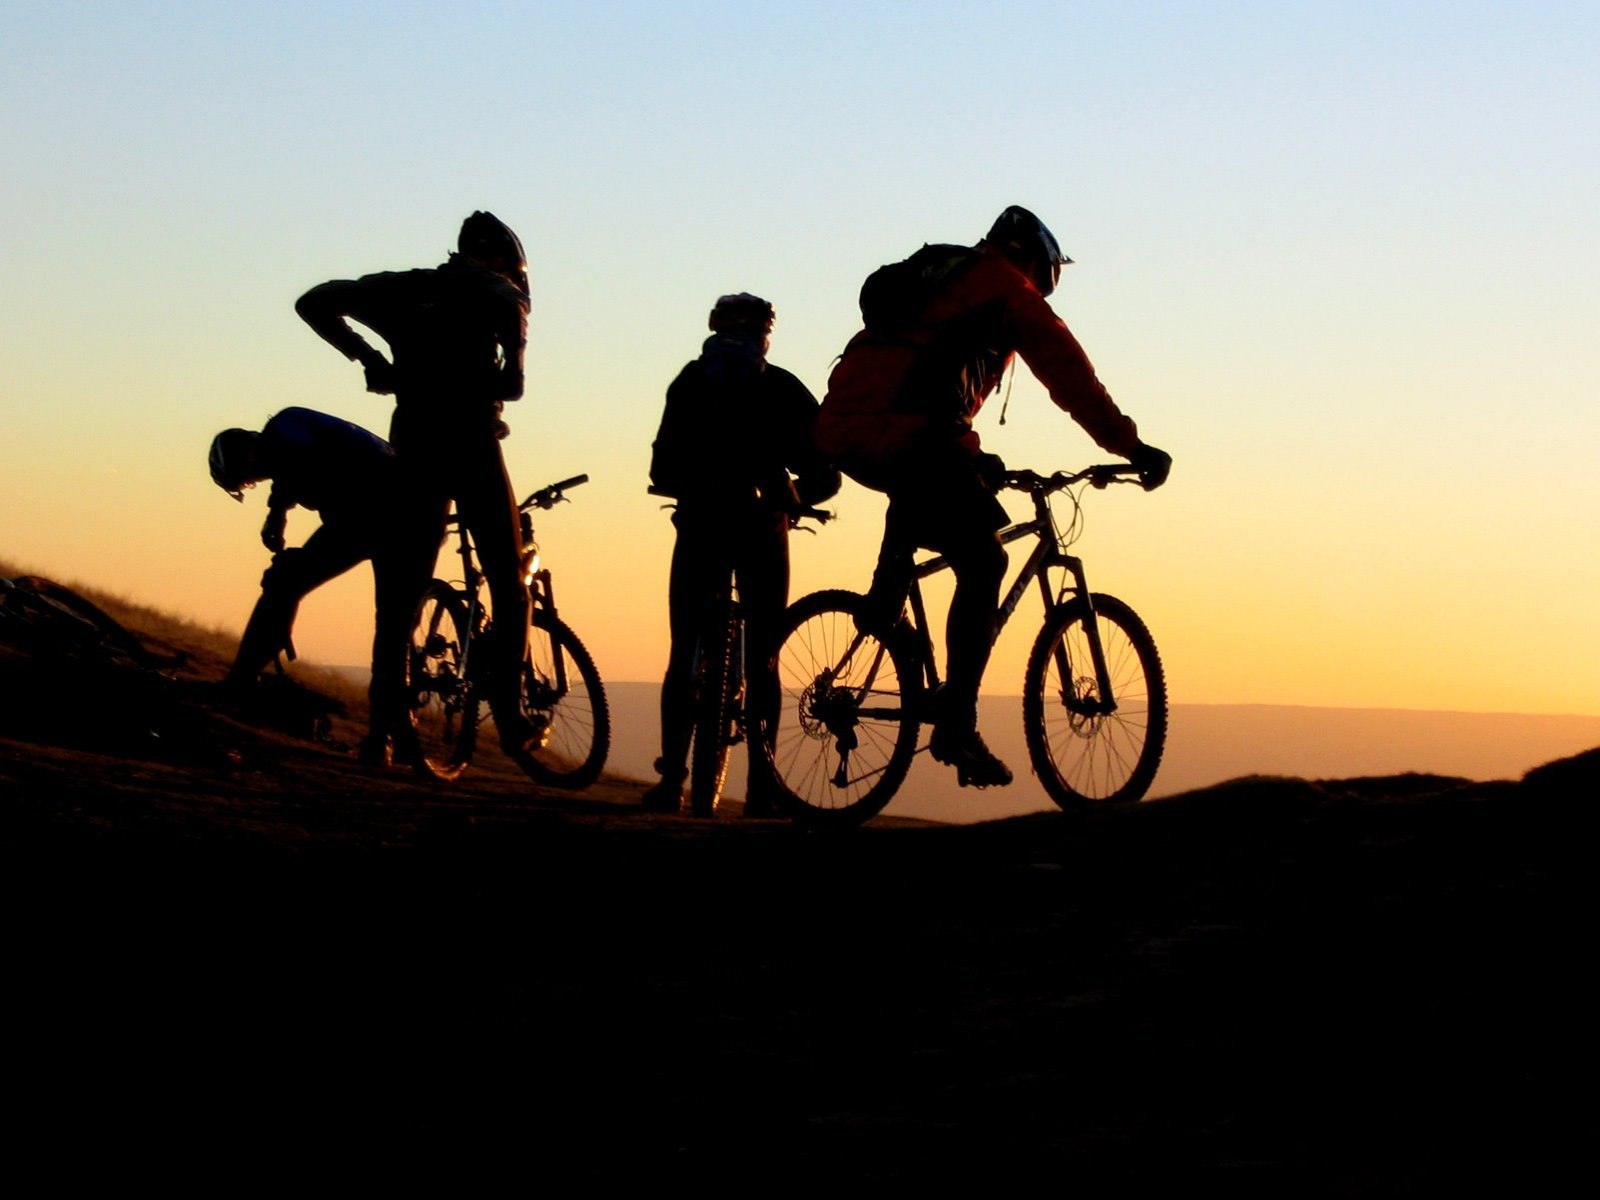 sunset-downhill-mountain-bike-hd